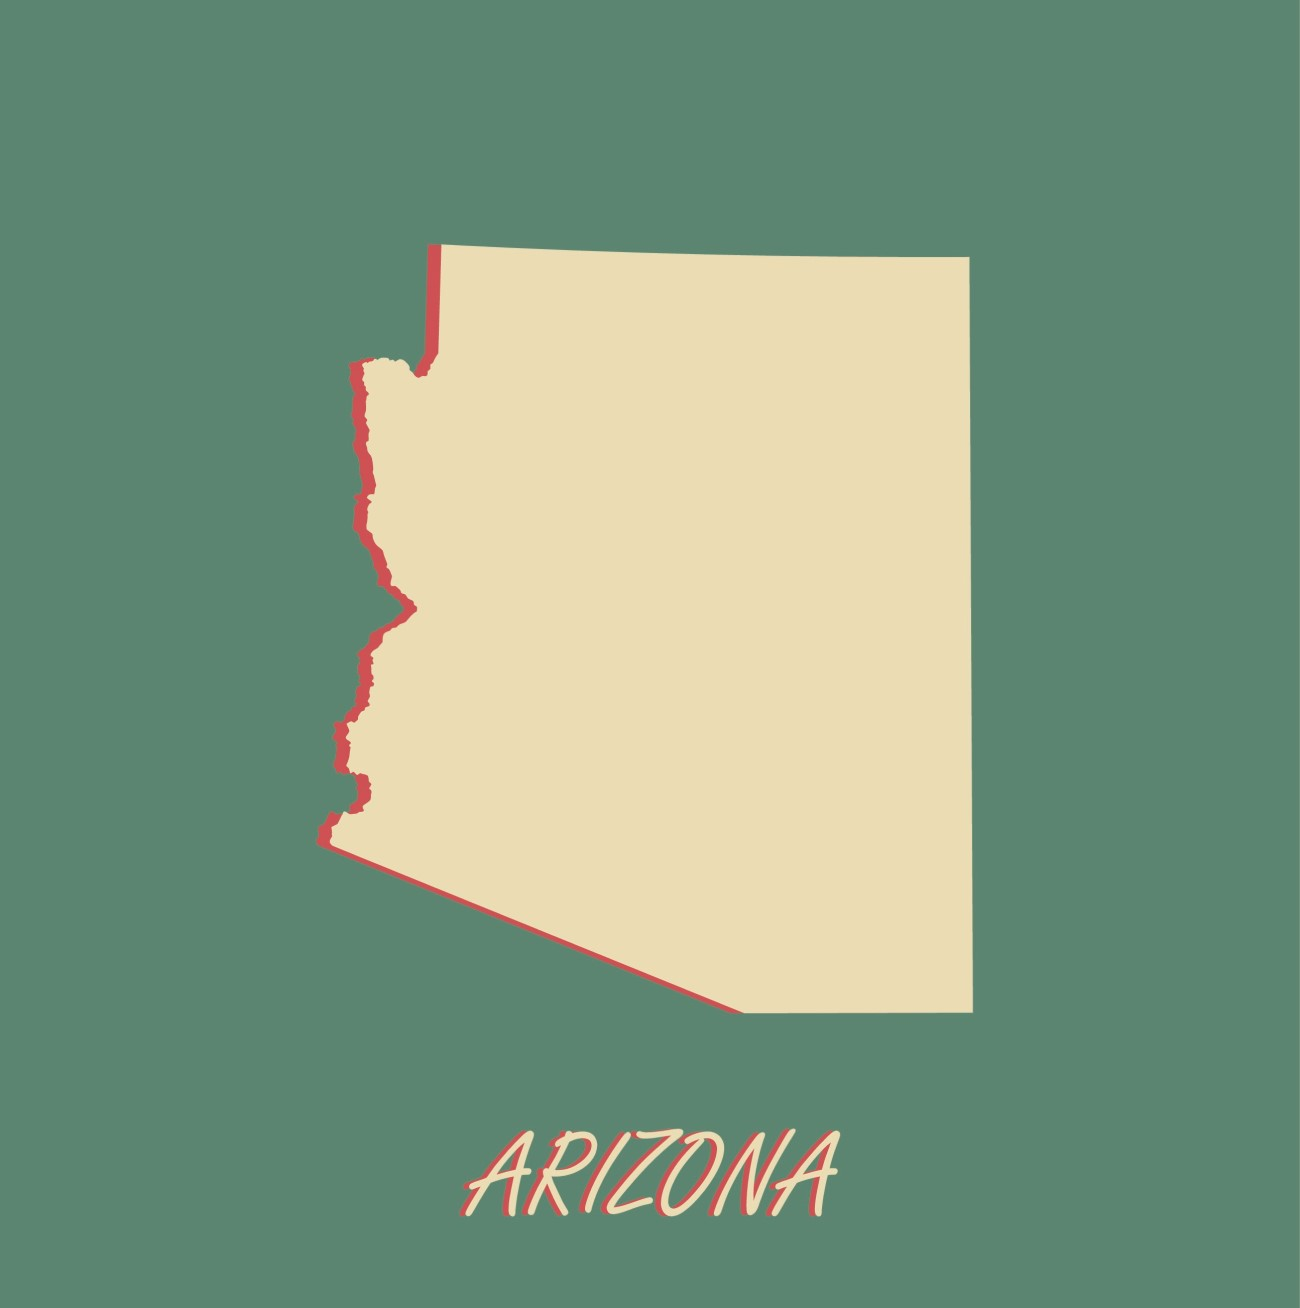 Nanny tax and payroll requirements for Arizona families